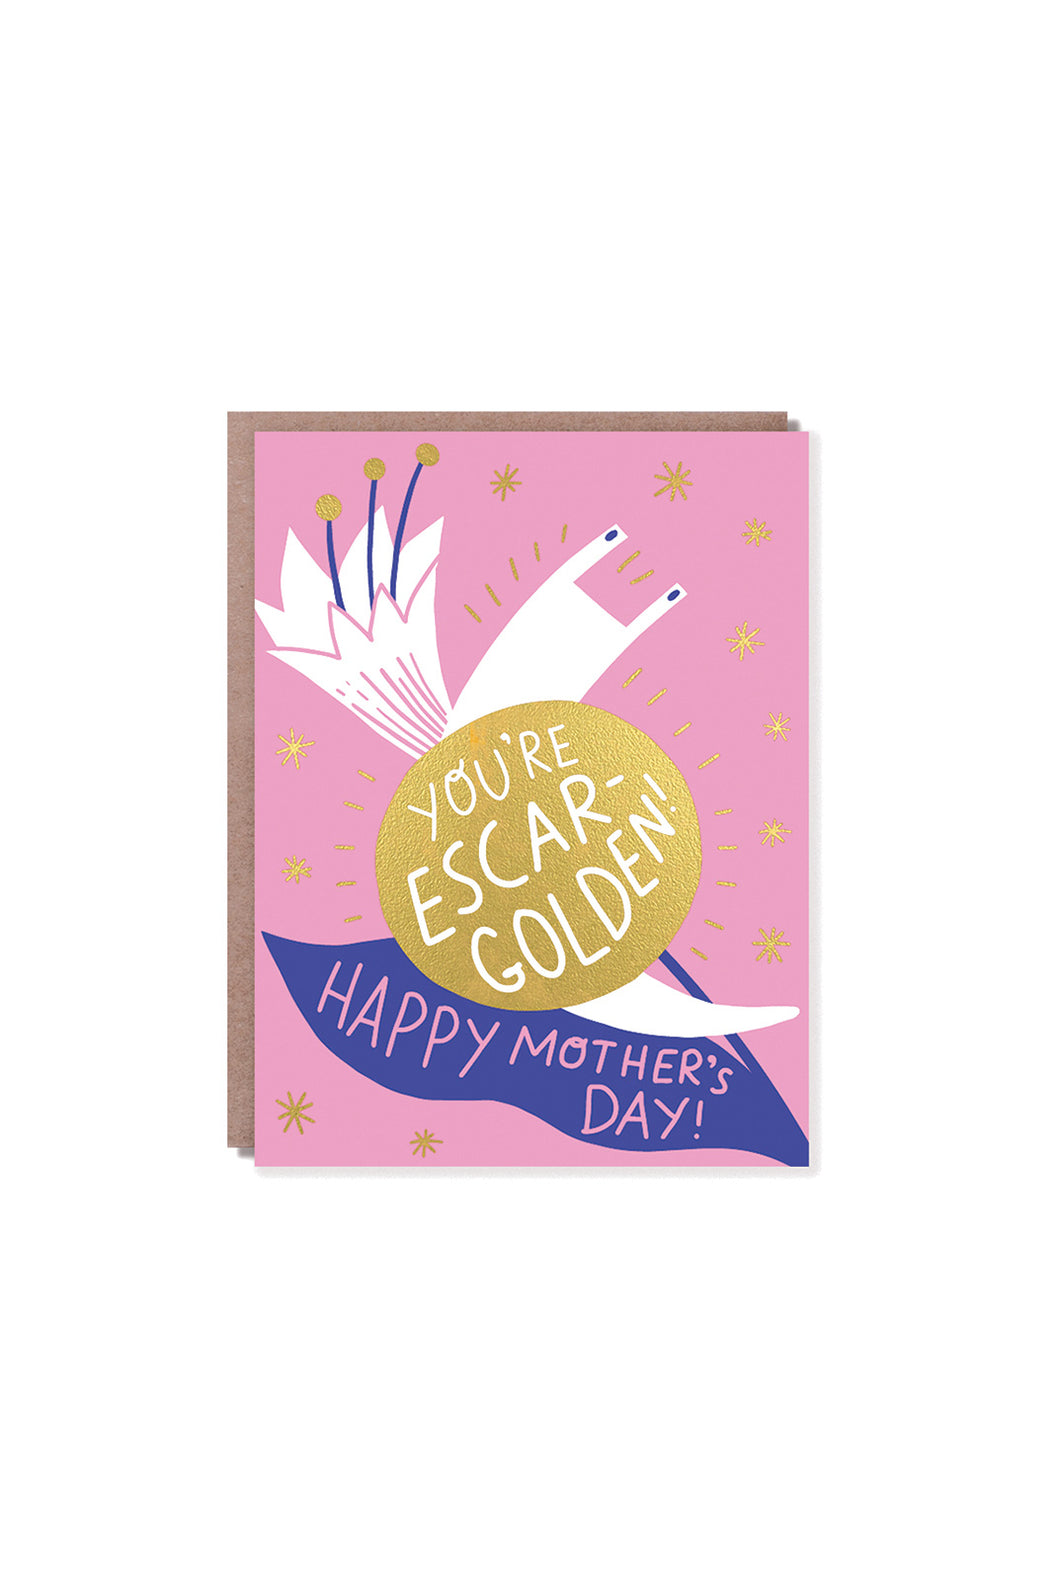 Hello Lucky - Single Card - Escar-Golden Mother's Day